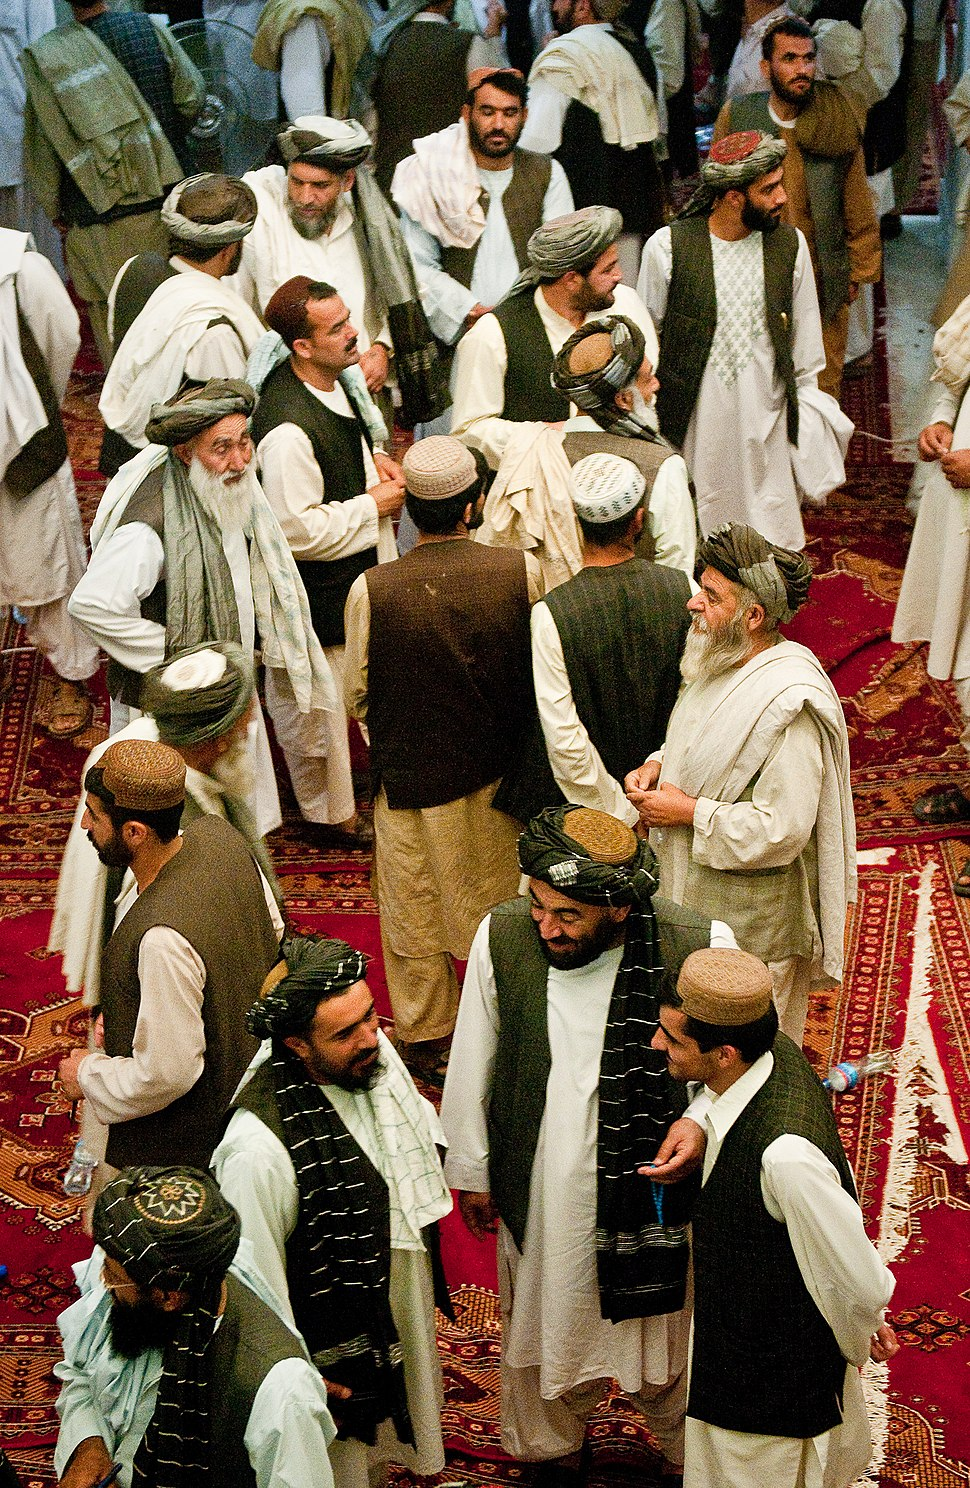 Tribal and religious leaders in southern Afghanistan